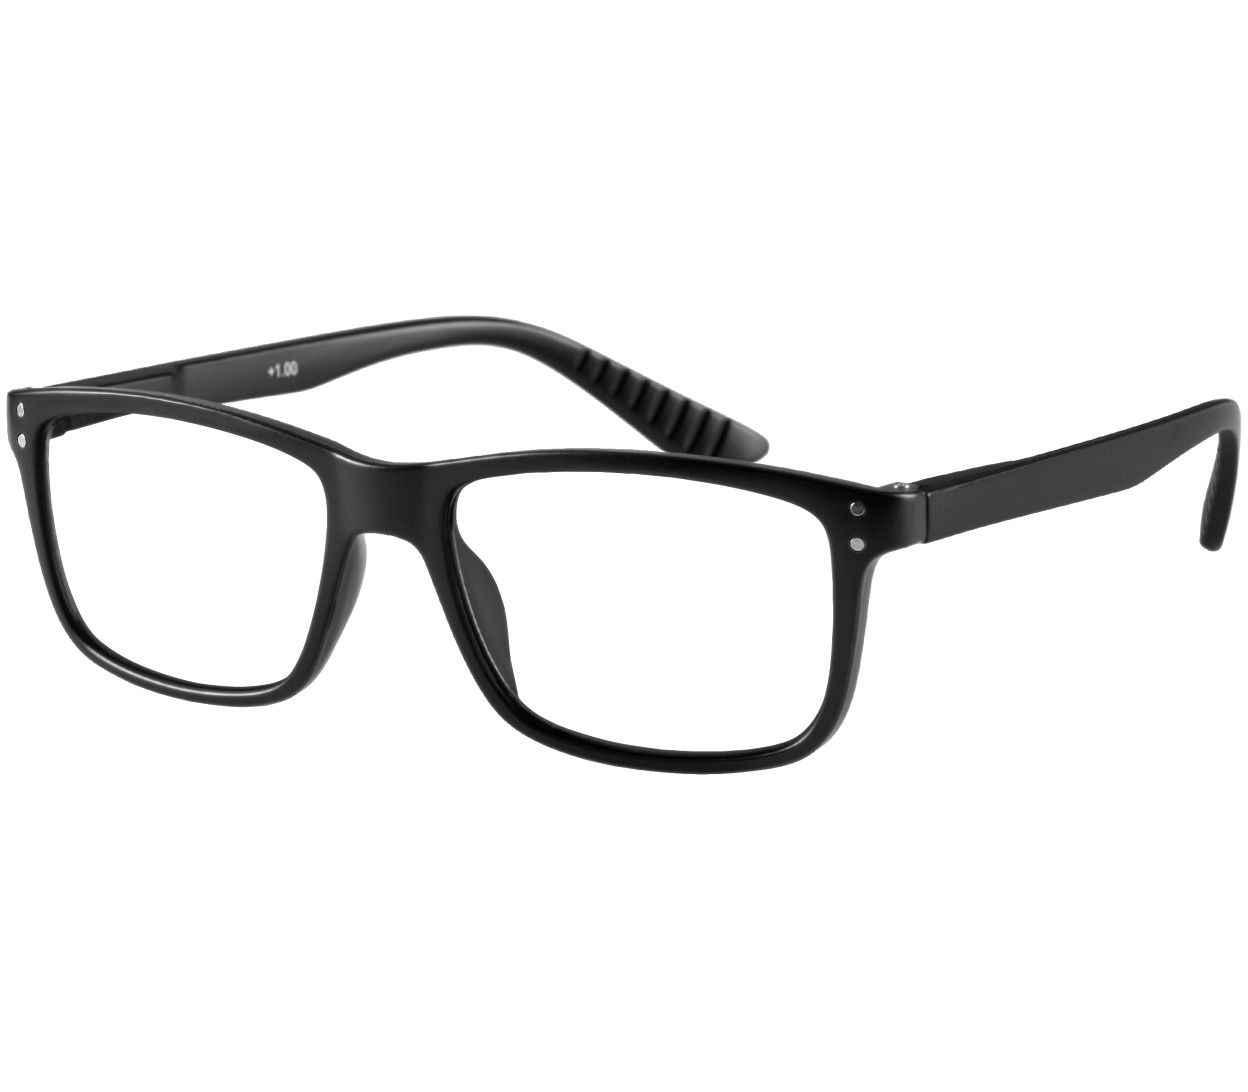 Main Image (Angle) - Dexter (Black) Classic Reading Glasses